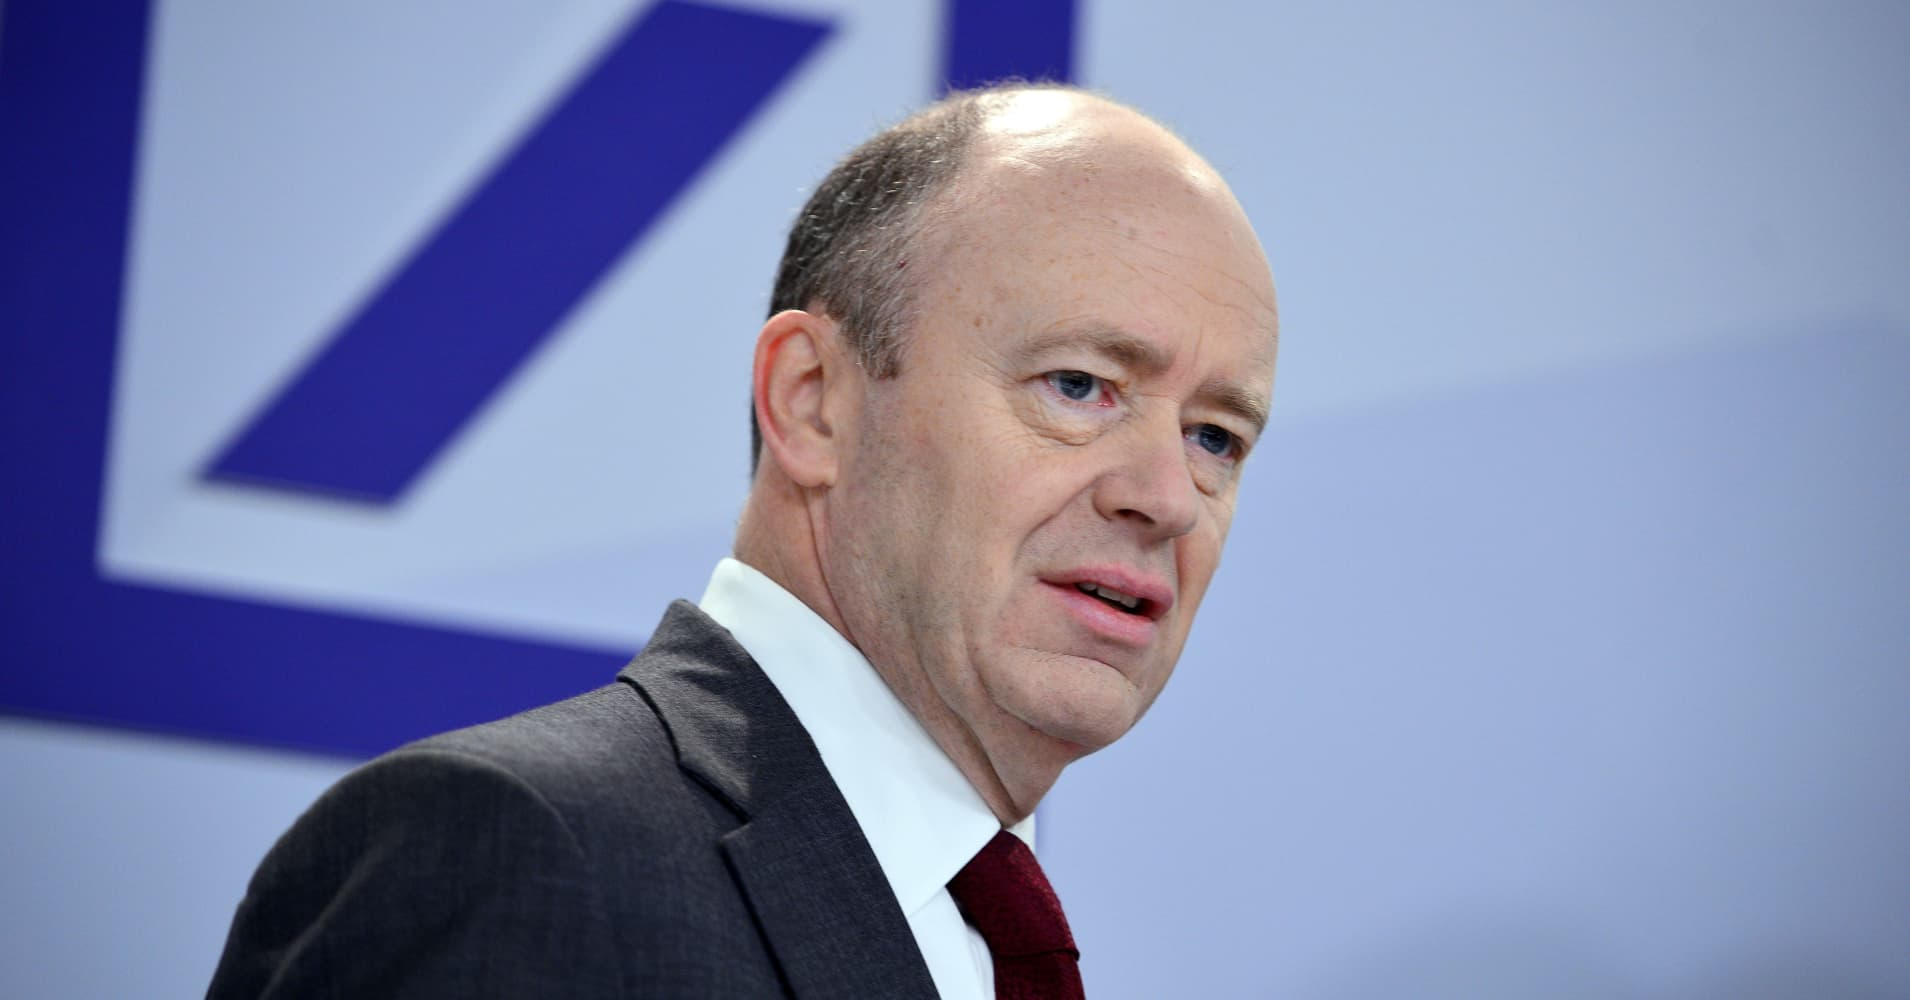 Deutsche Bank CEO says 'never say never' on capital hike